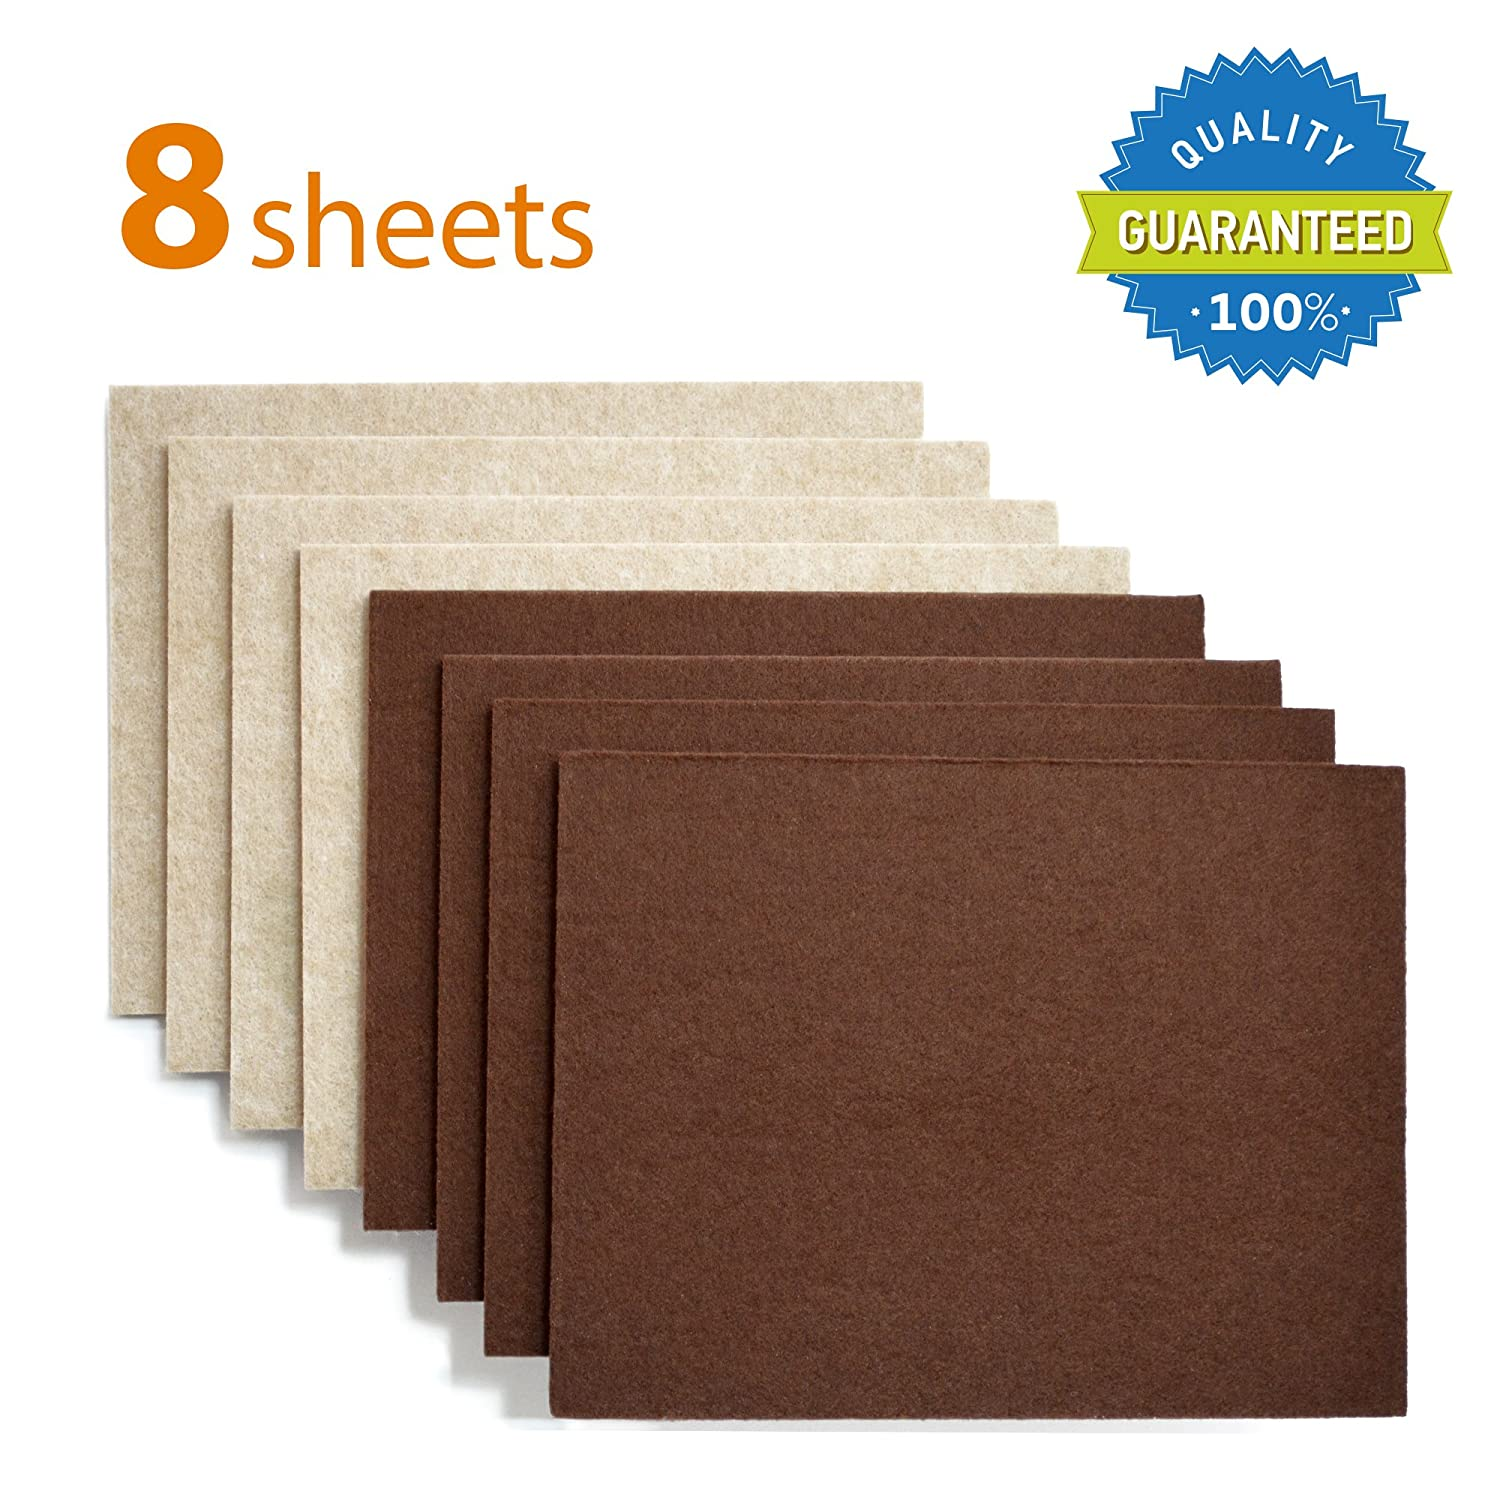 other carpet tiles feet castor cap protectors protector wood furniture laminate sofa floor pin cups flooring chair